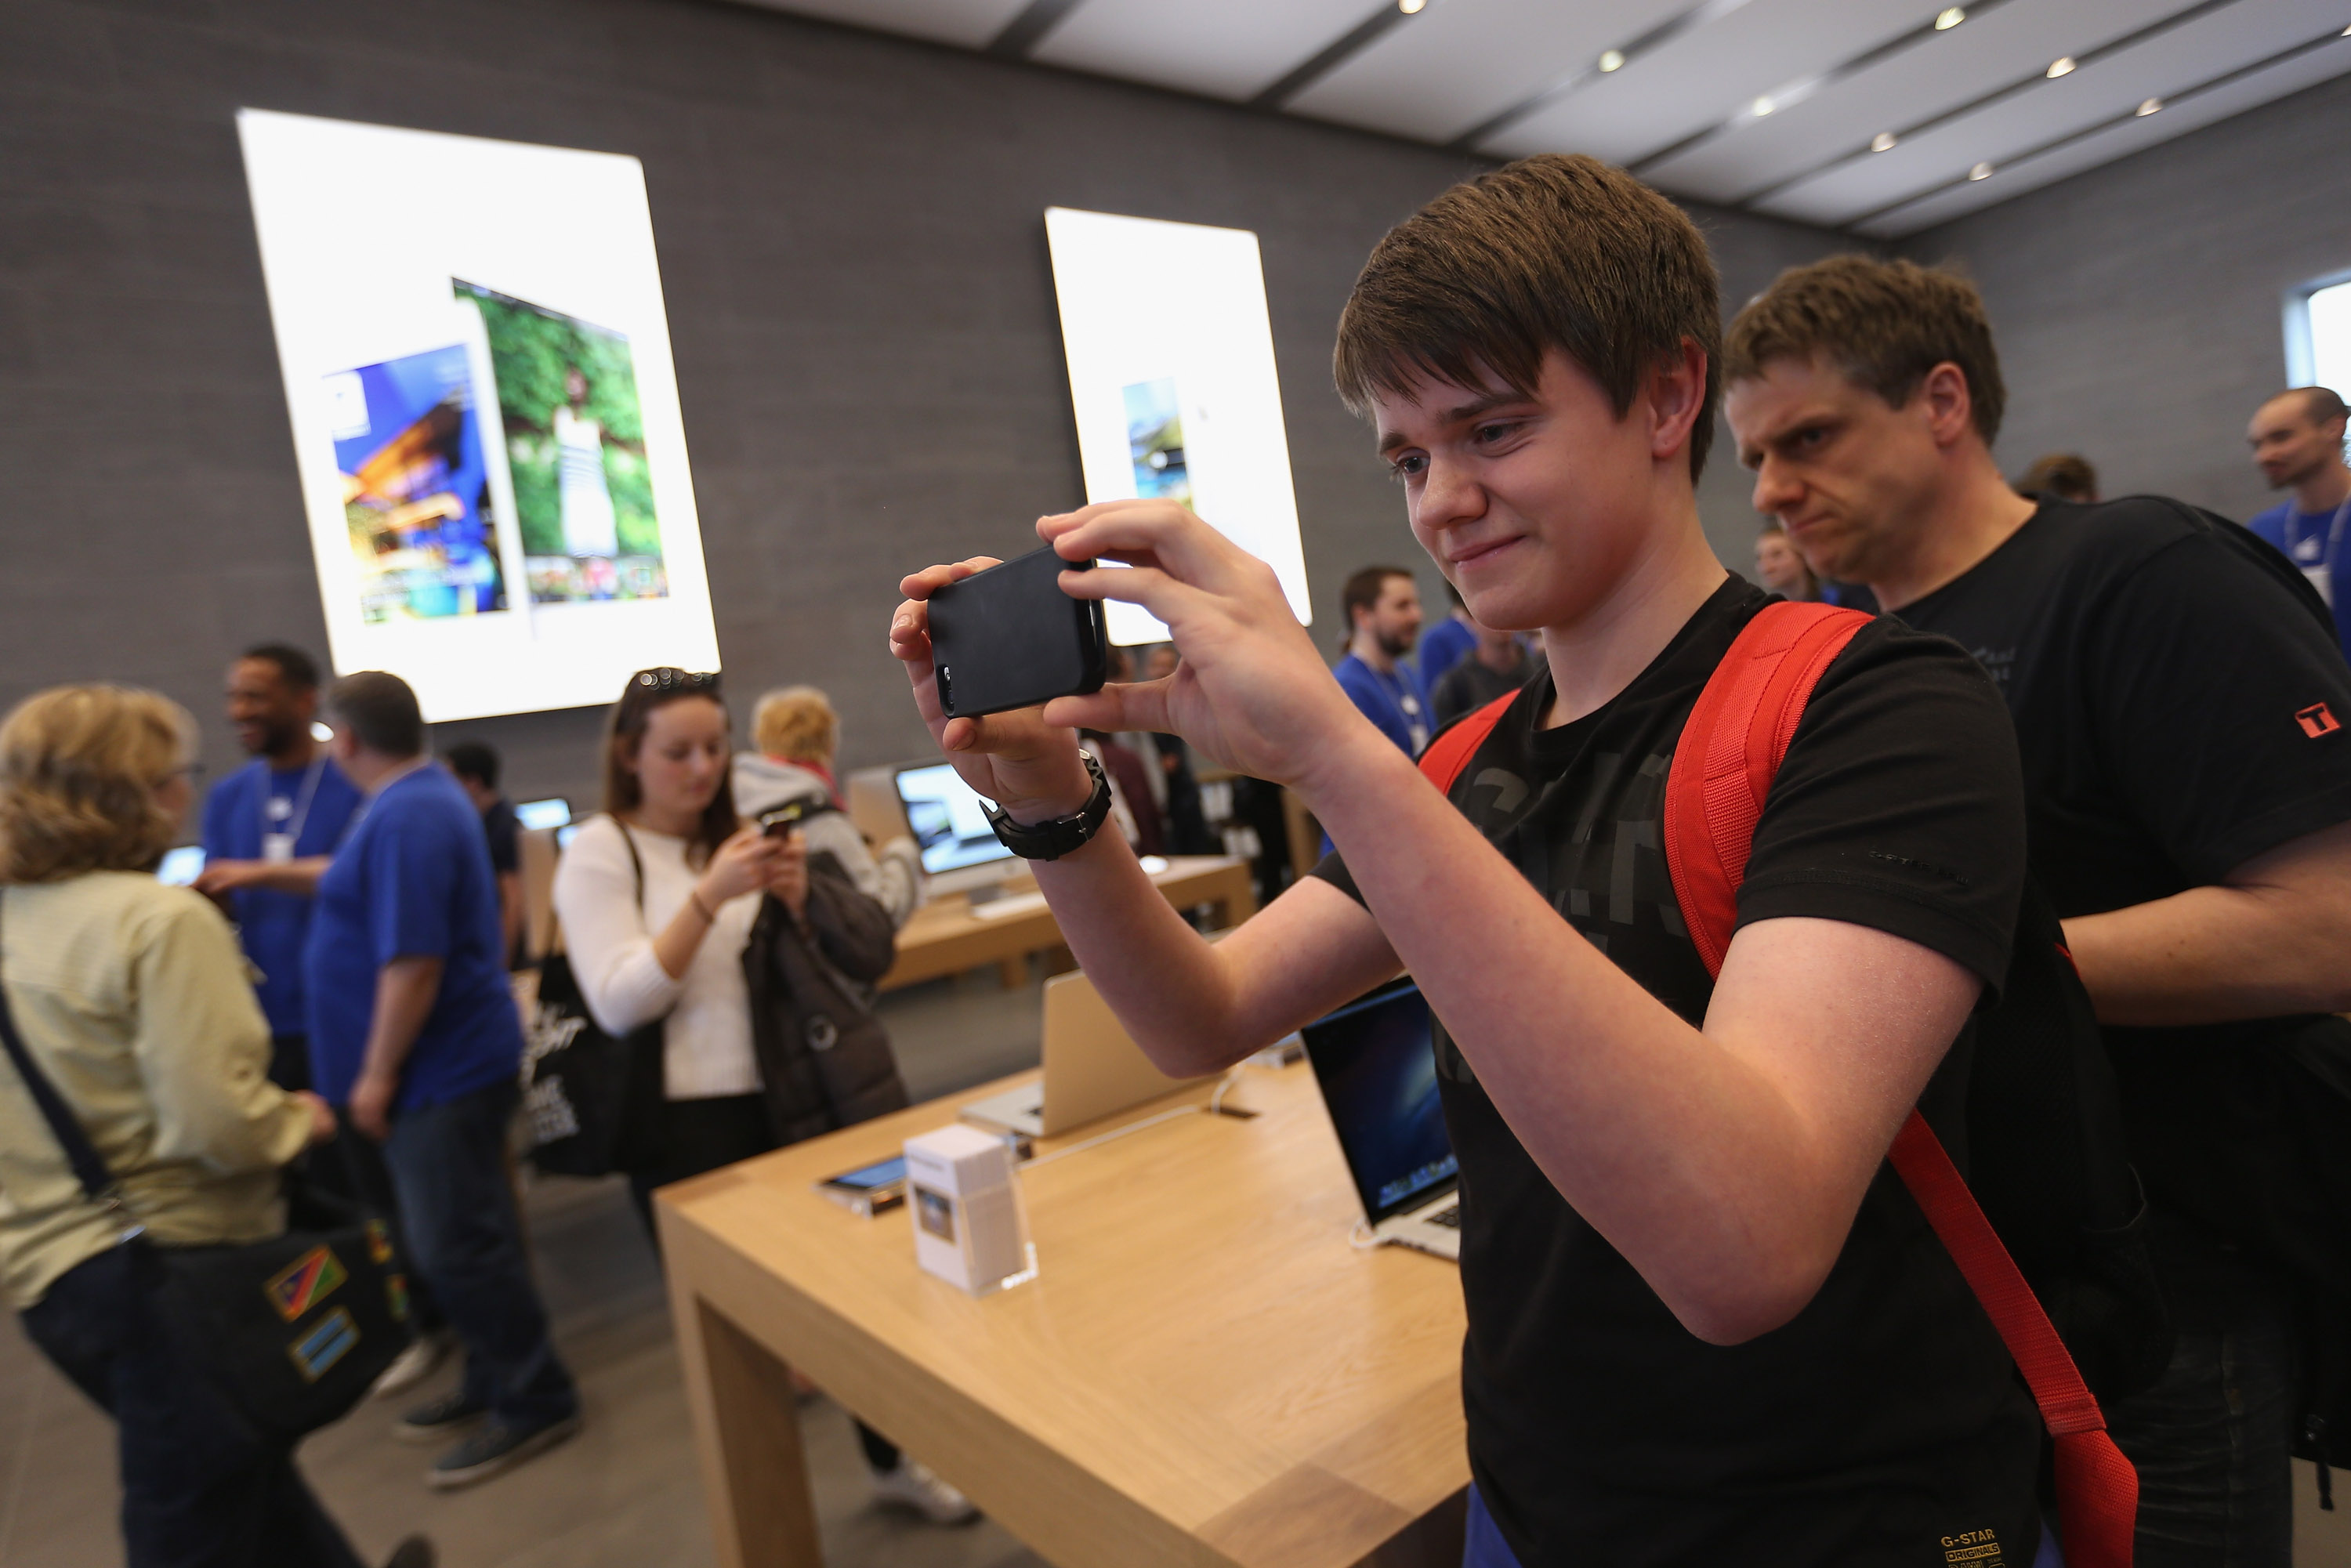 How to View Your iCloud Photos | Chron com